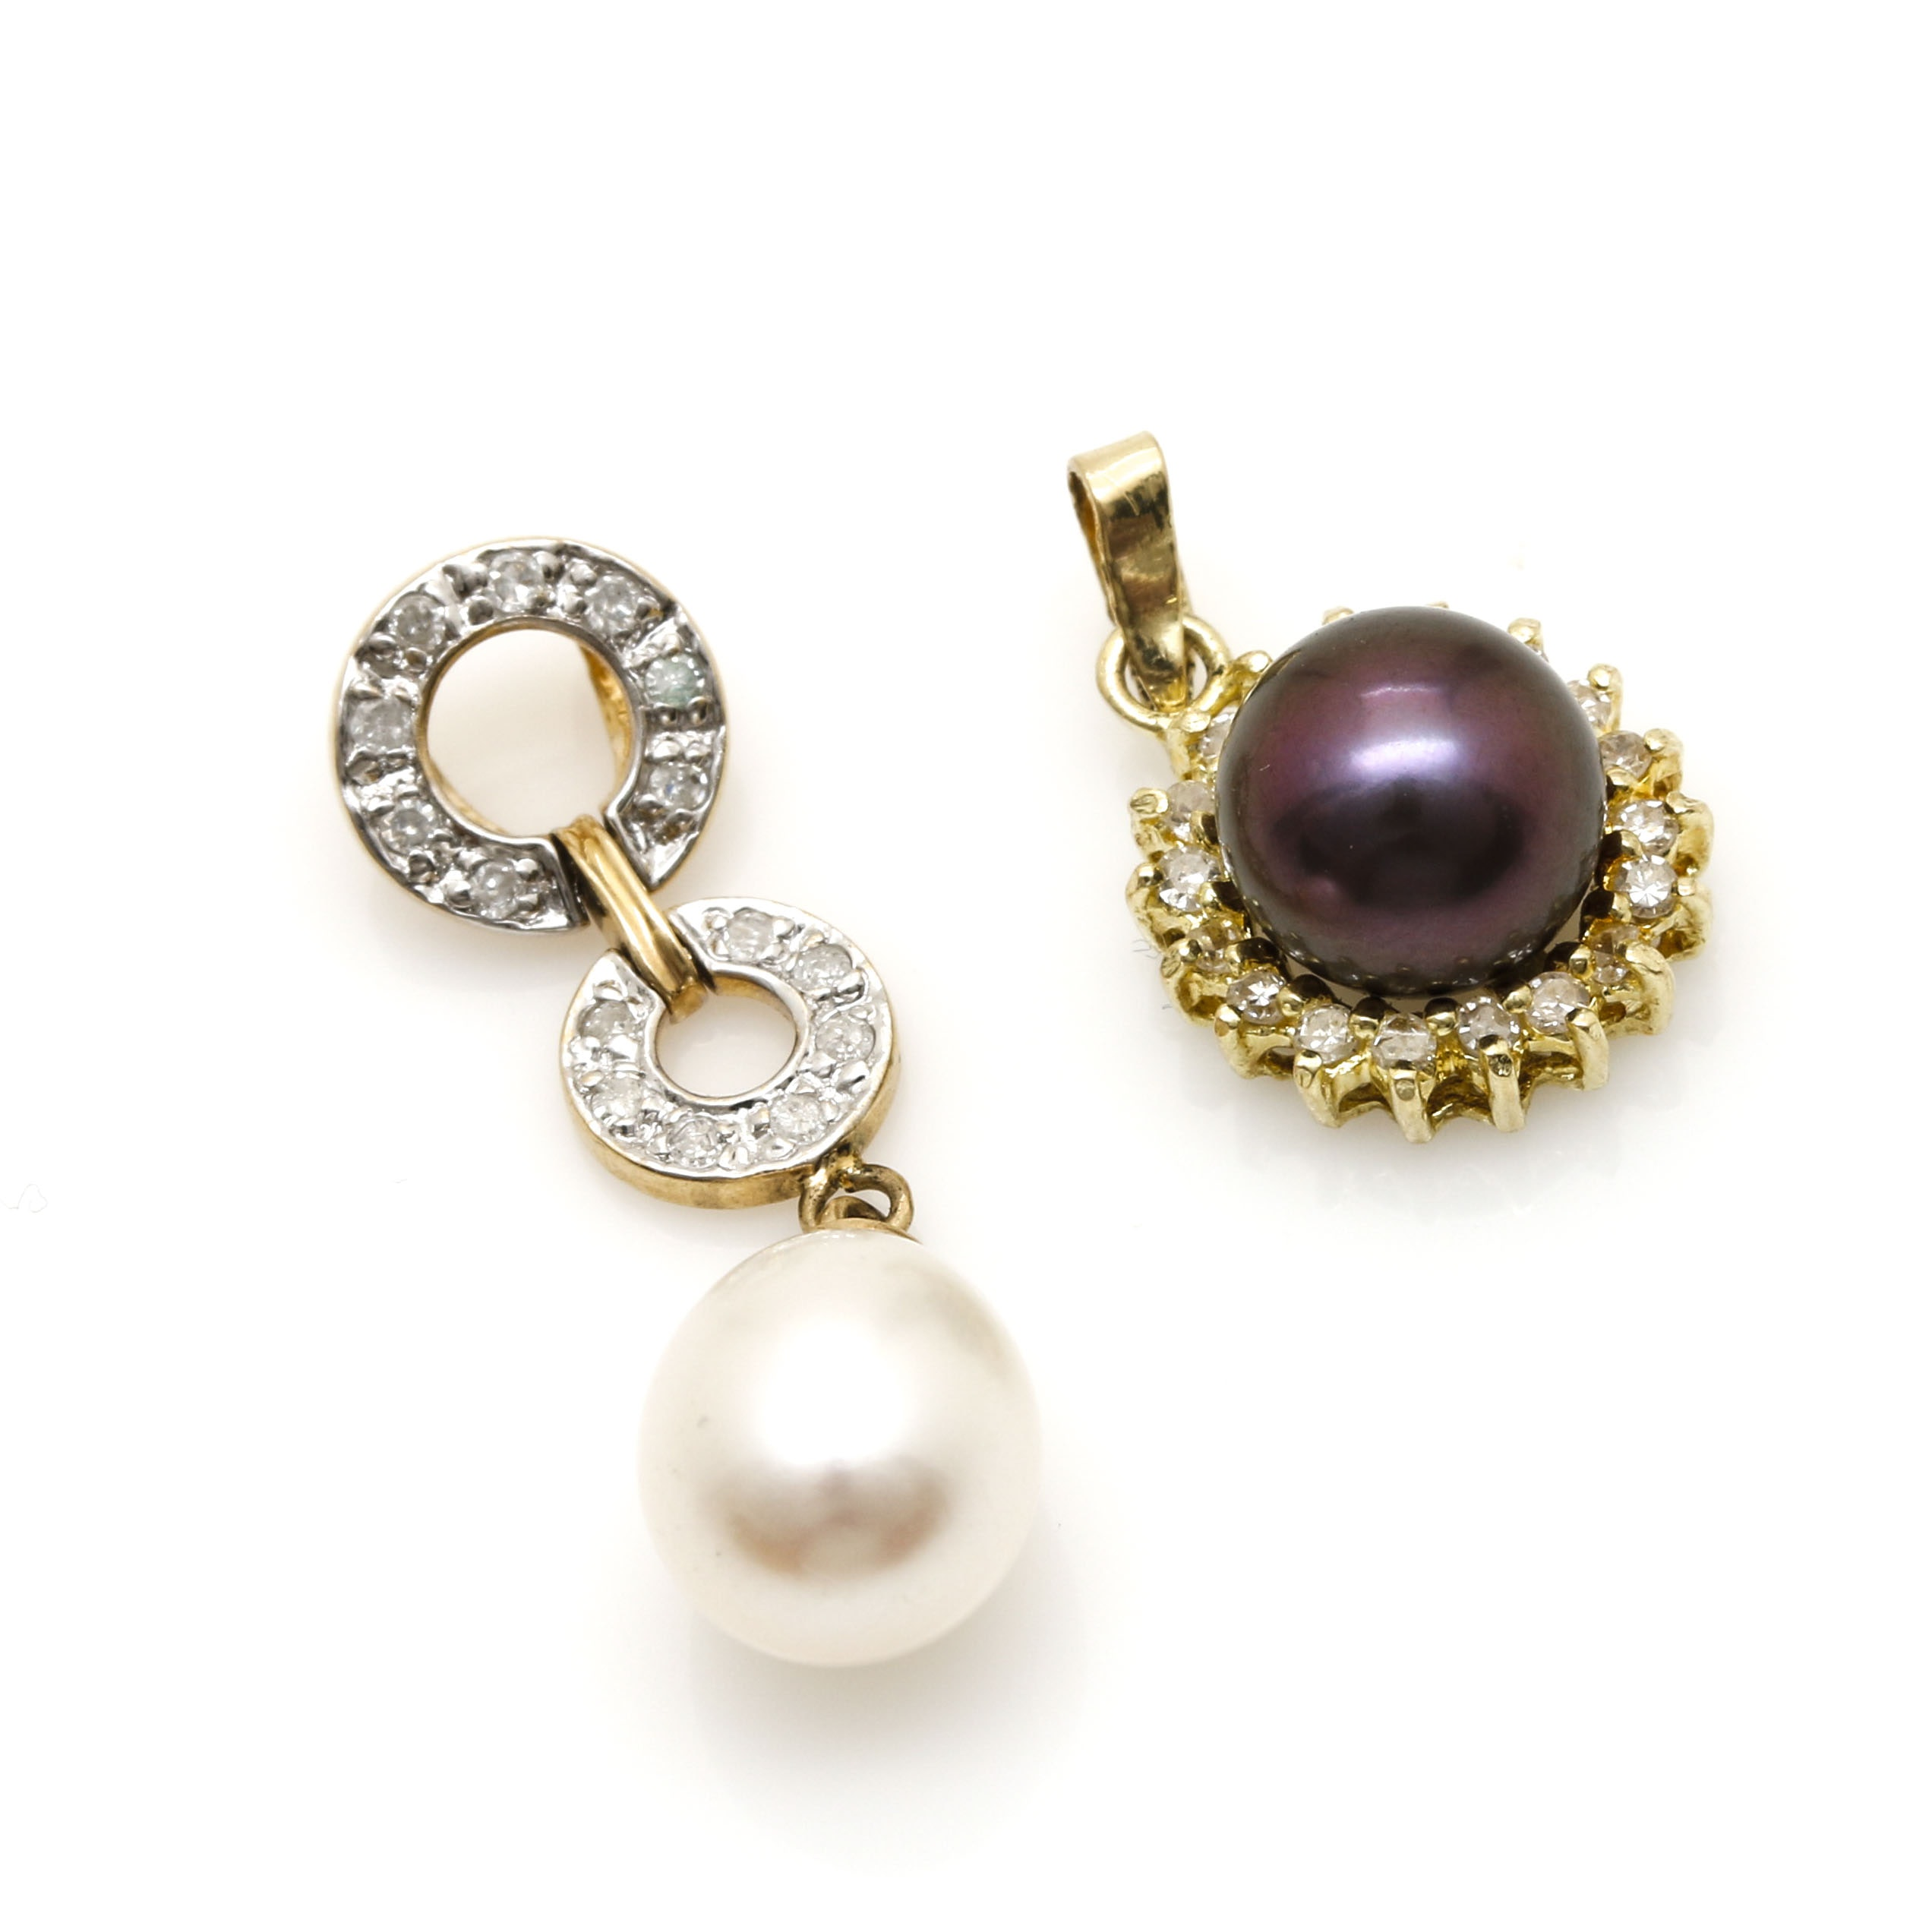 14K Yellow Gold Cultured Pearl and Diamond Pendants